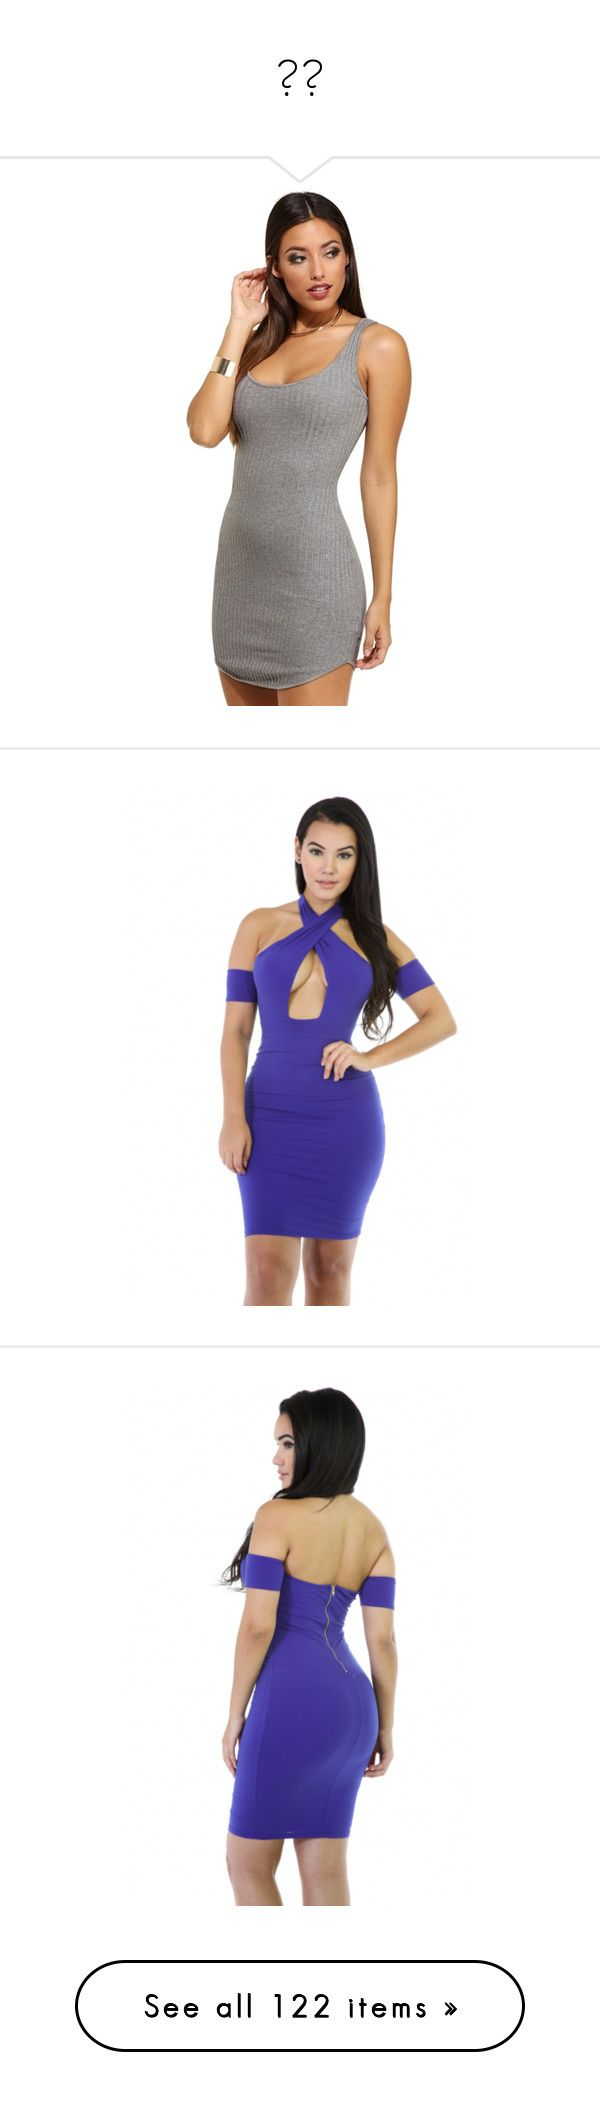 """""""💁🏽"""" by daddyslittlevixen ❤ liked on Polyvore featuring dresses, heather grey dress, blue bodycon dress, body conscious dress, bodycon dress, blue body con dress, blue dress, body con dress, white dress and white day dress"""